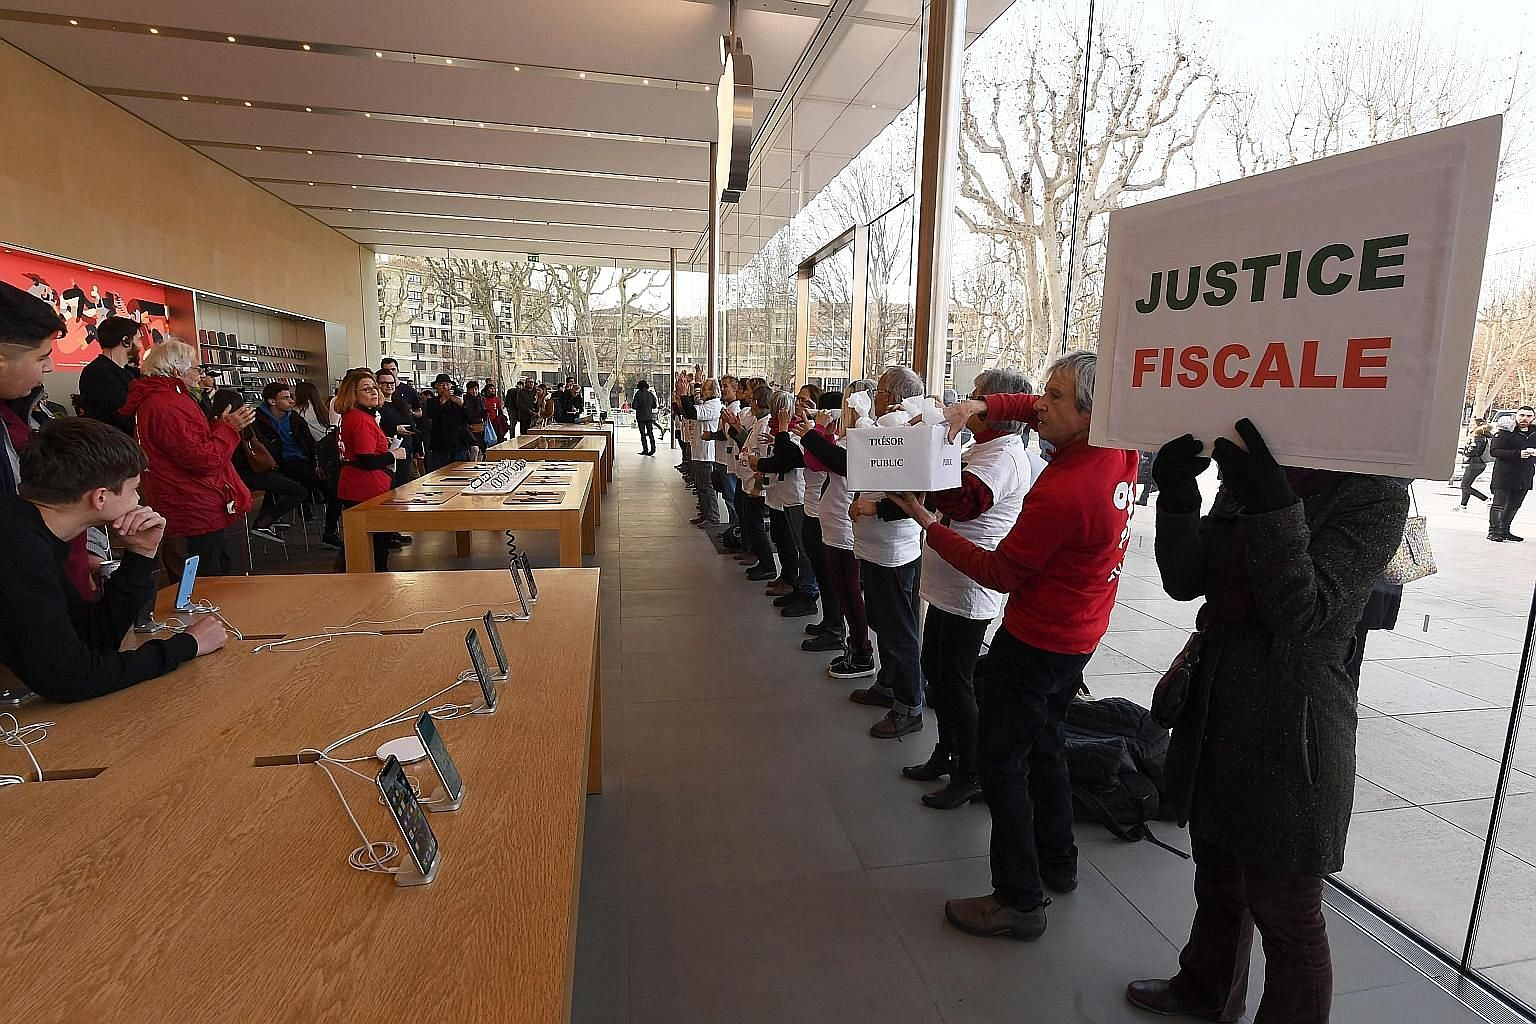 Activists taking part in a protest against tax evasion in an Apple store in Aix-en-Provence, southern France, in January. Under the digital tax proposal that is awaiting Parliament's approval, 3 per cent of a digital company's turnover in France must